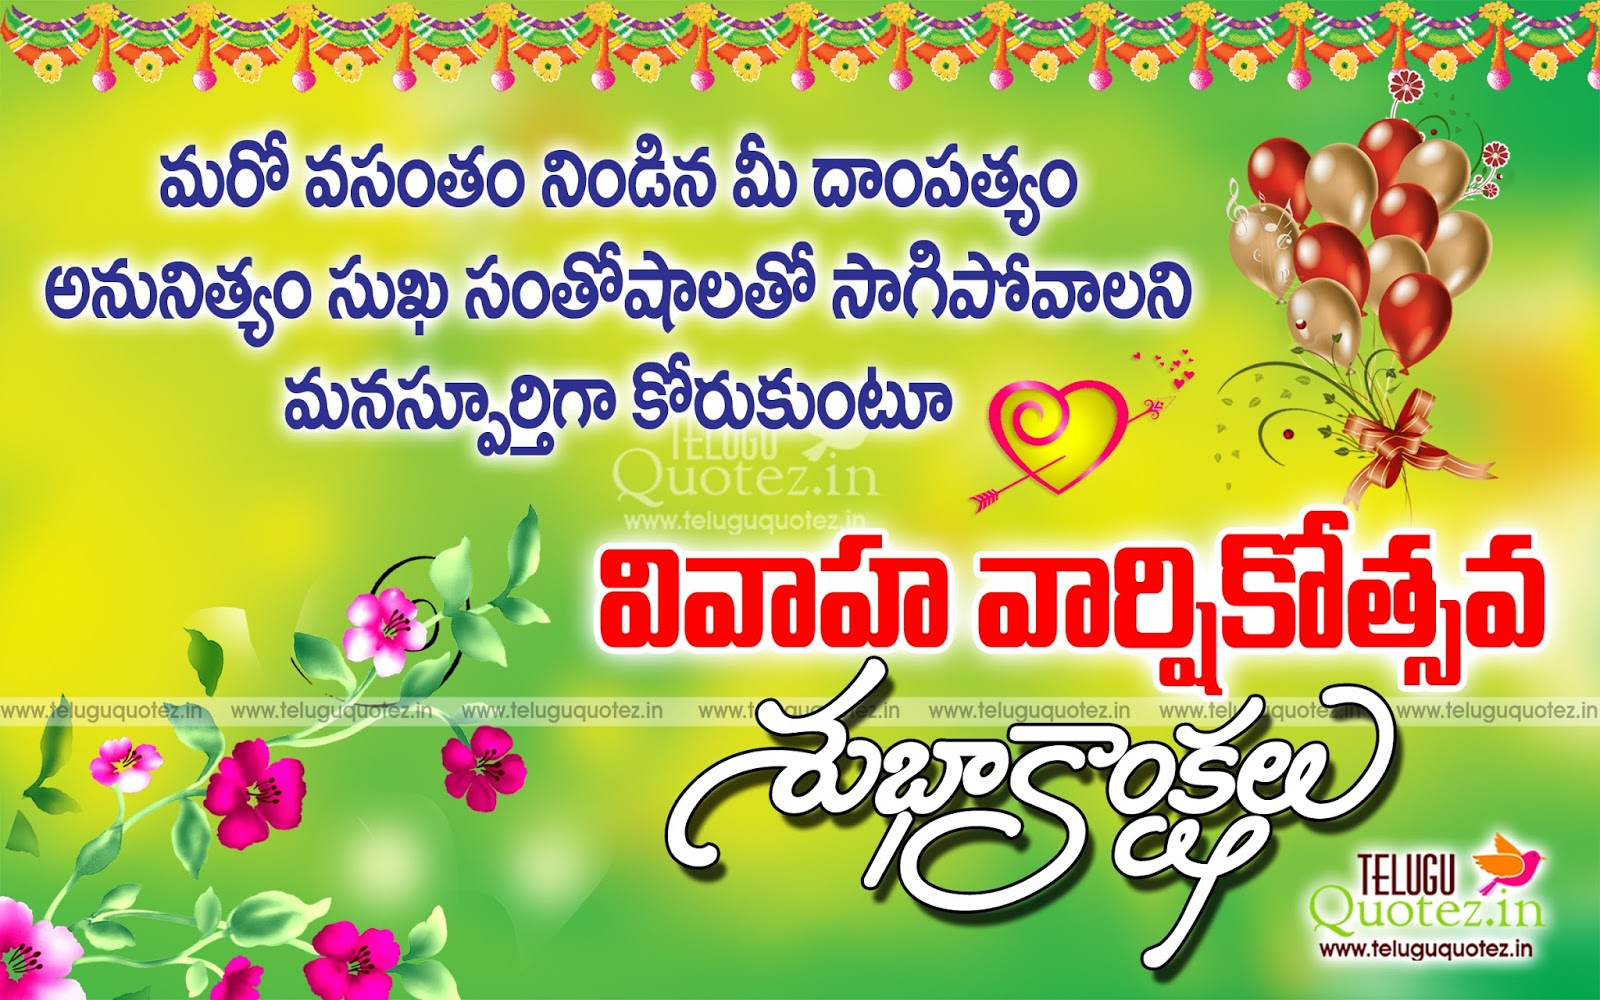 Best Telugu Marriage Anniversary Greetings And Wishes Teluguquotez